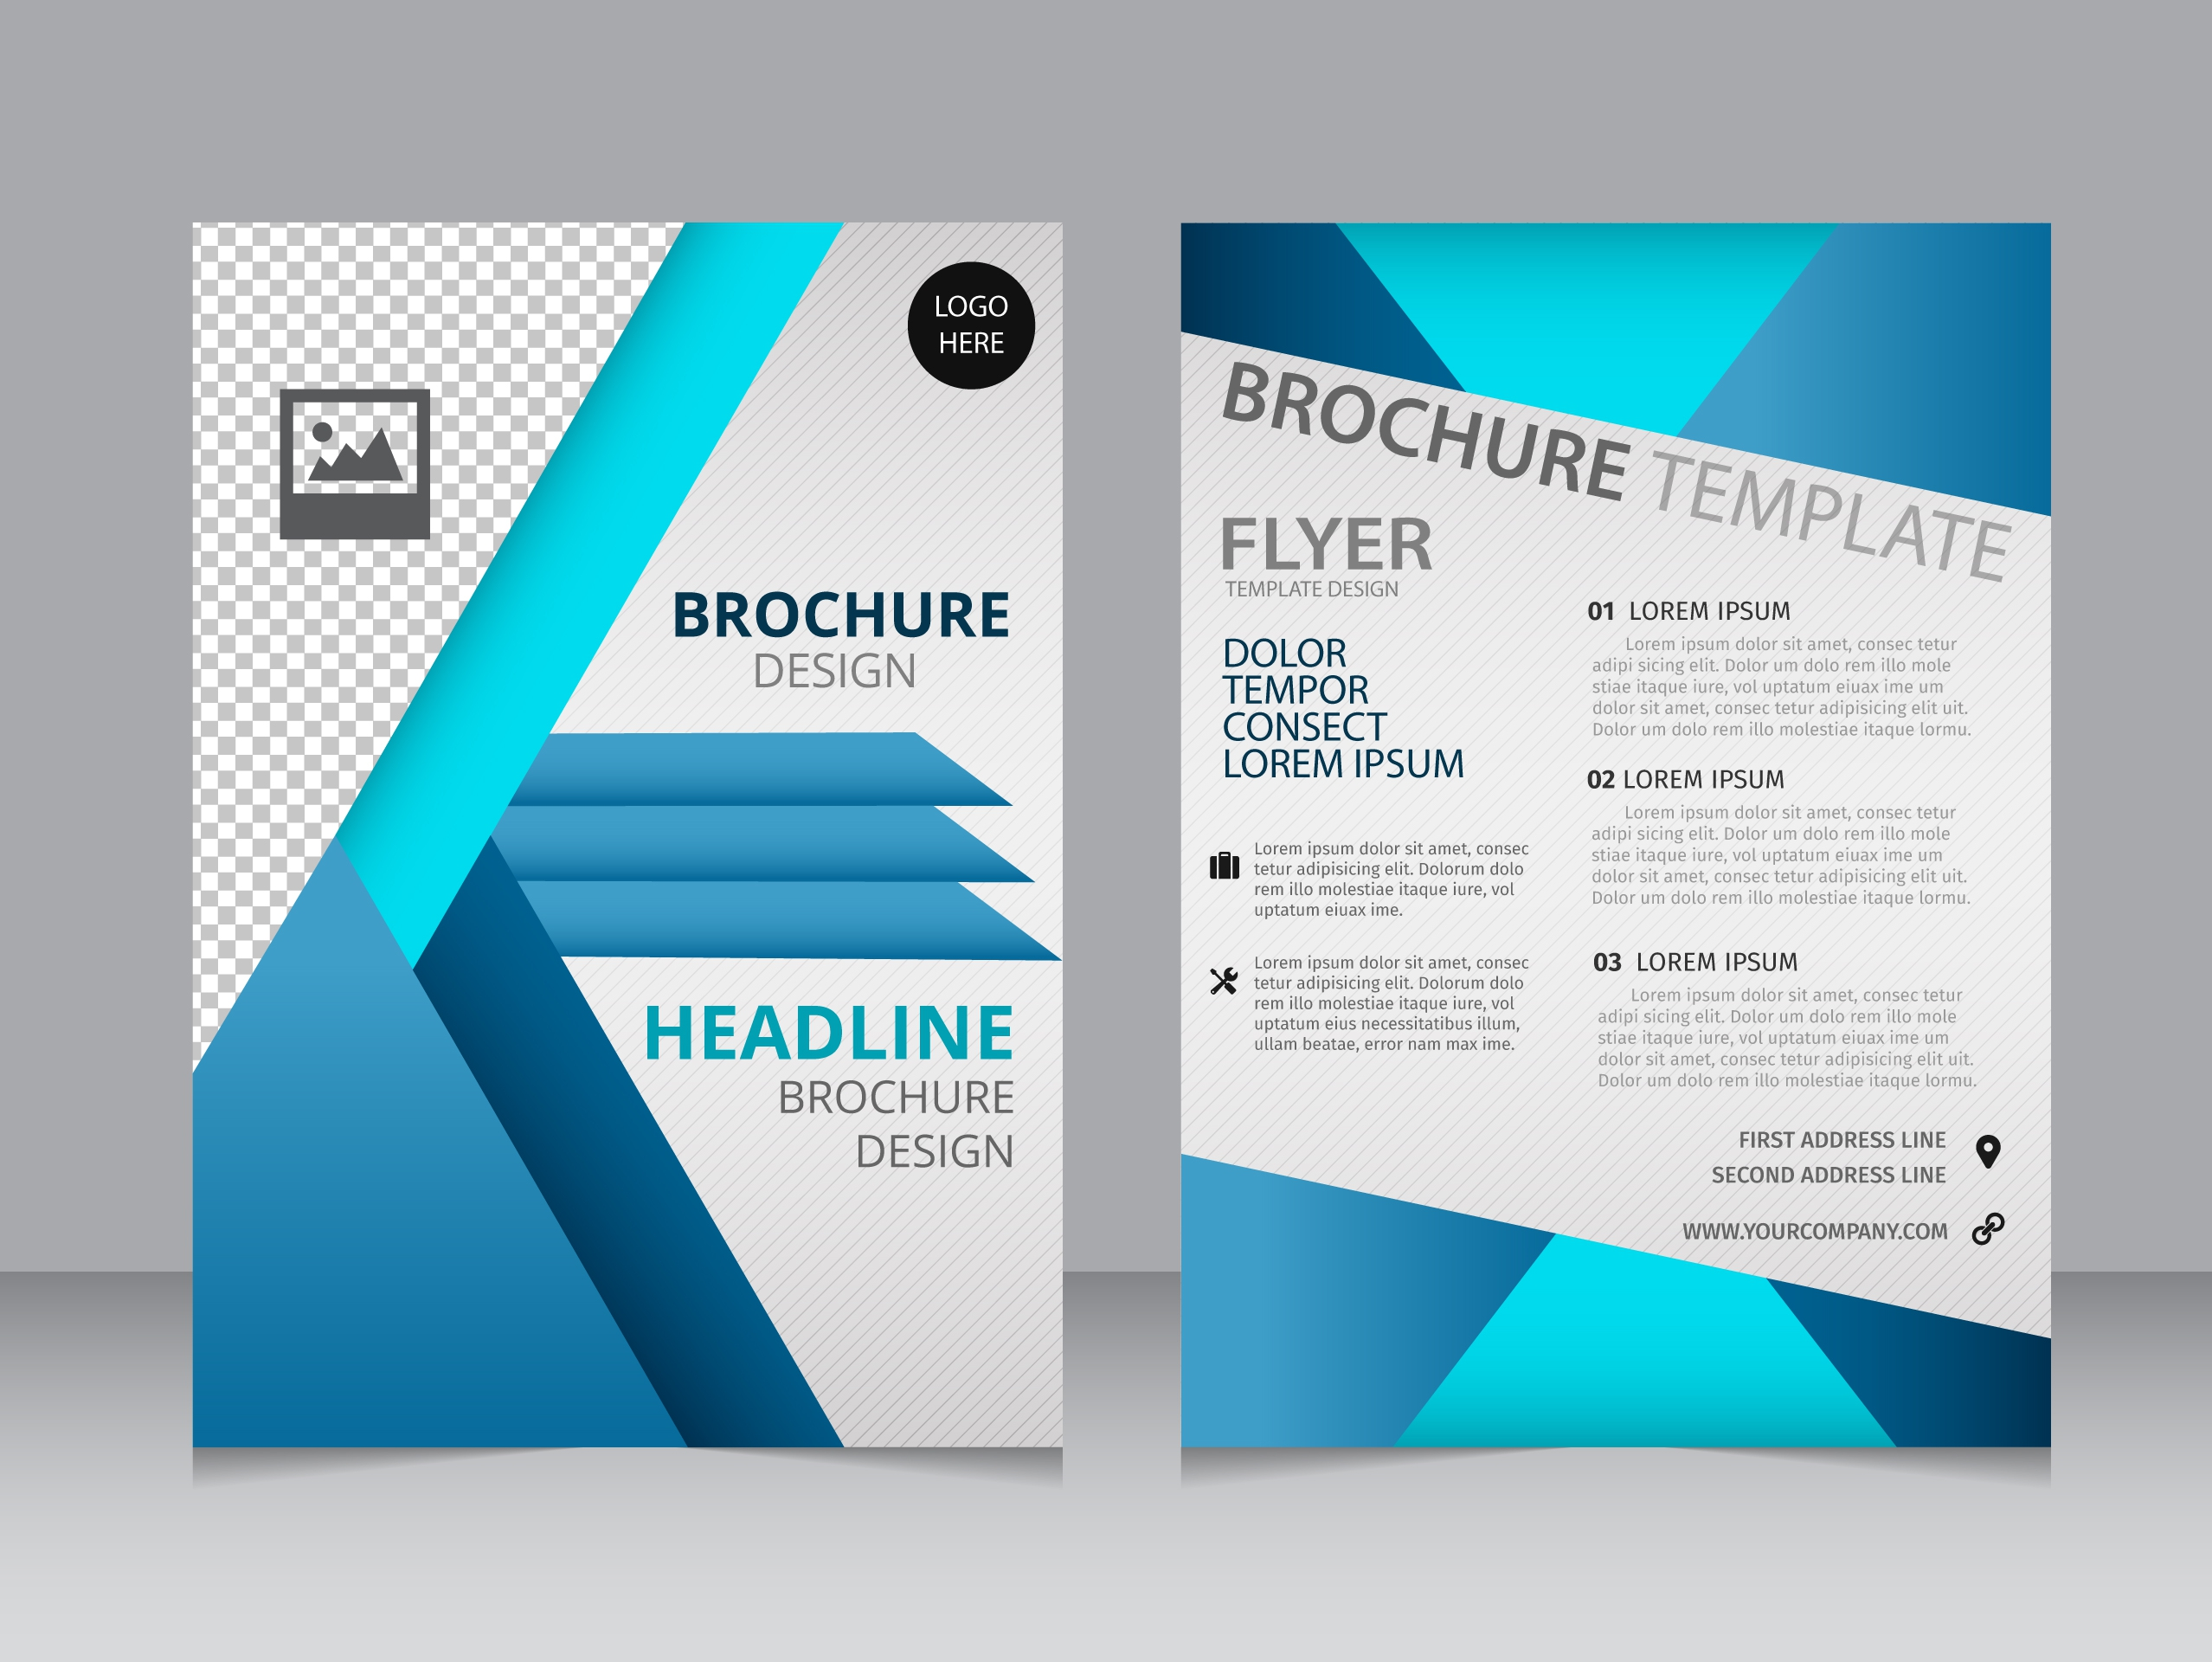 new product specification template - 11 free sample travel brochure templates printable samples